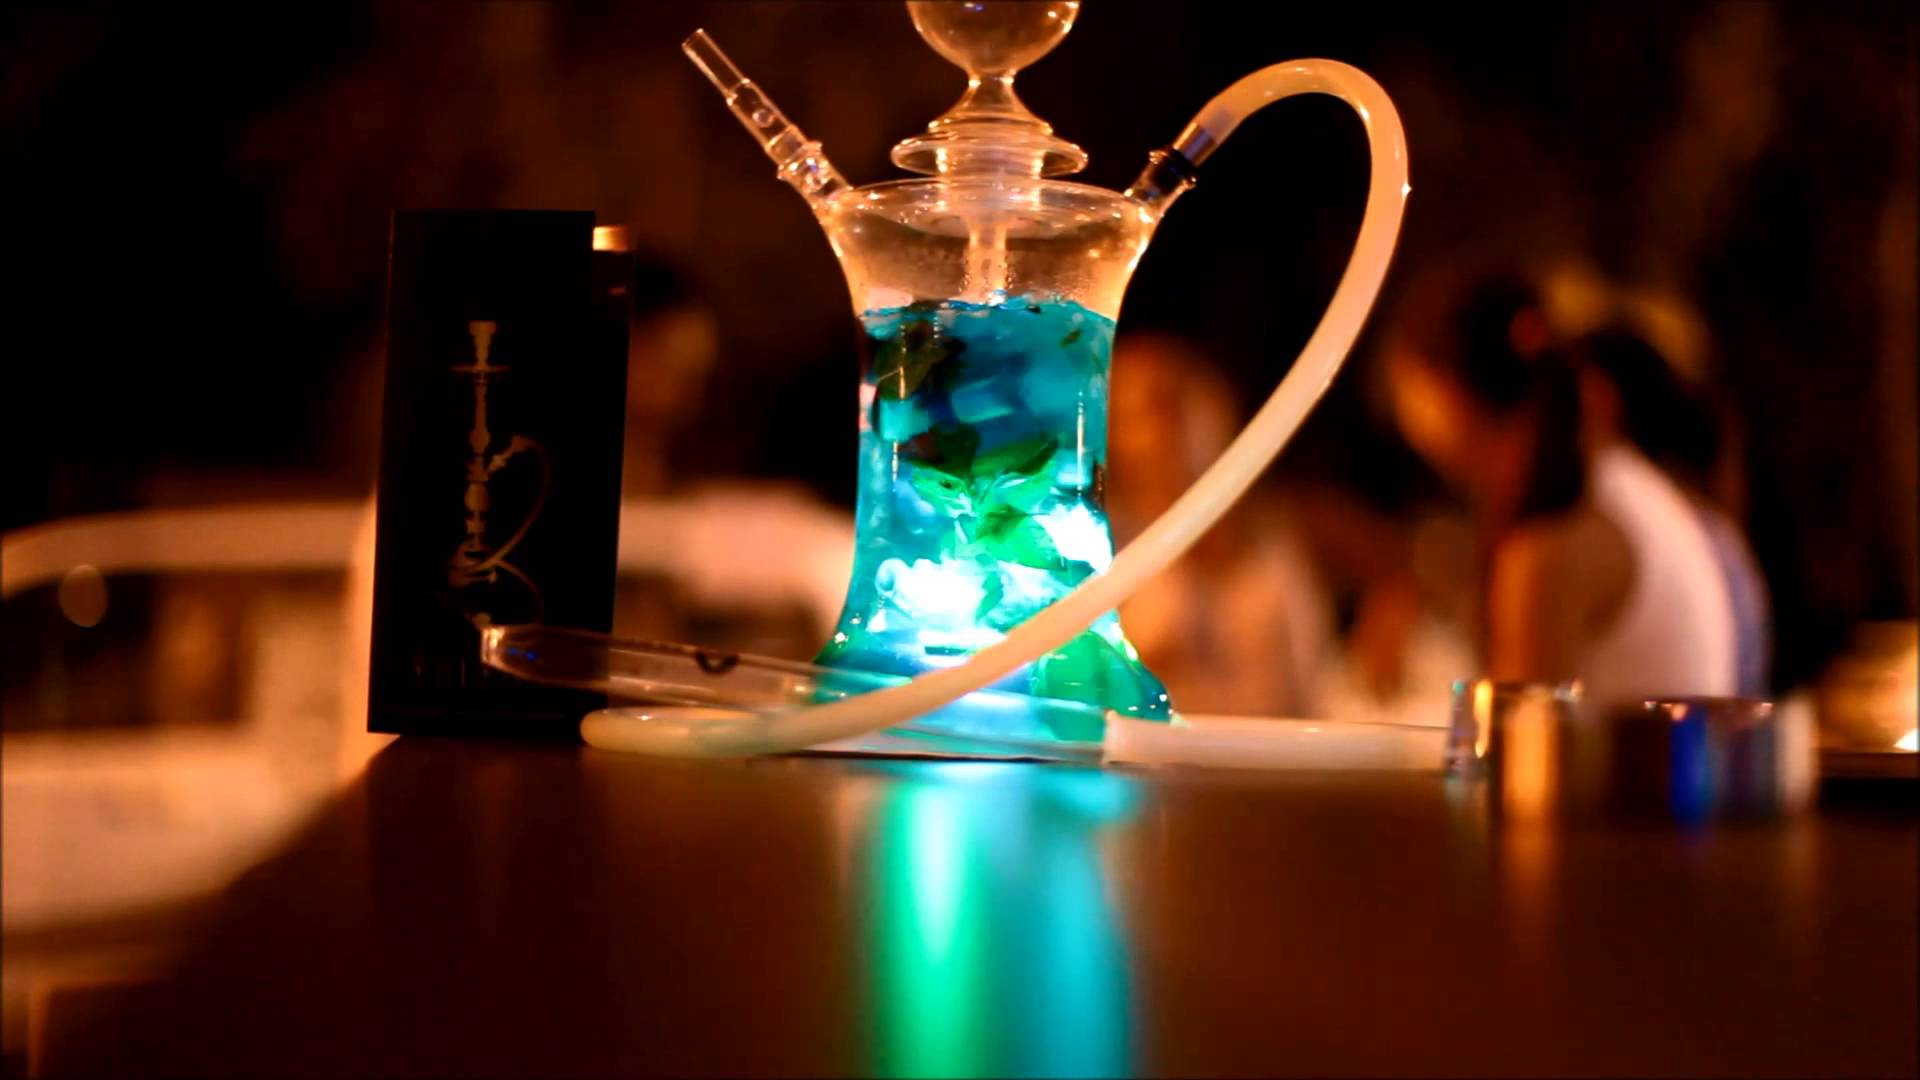 Hookah Wallpapers - Hookah Live Images, HD Wallpapers - GuoGuiyan .